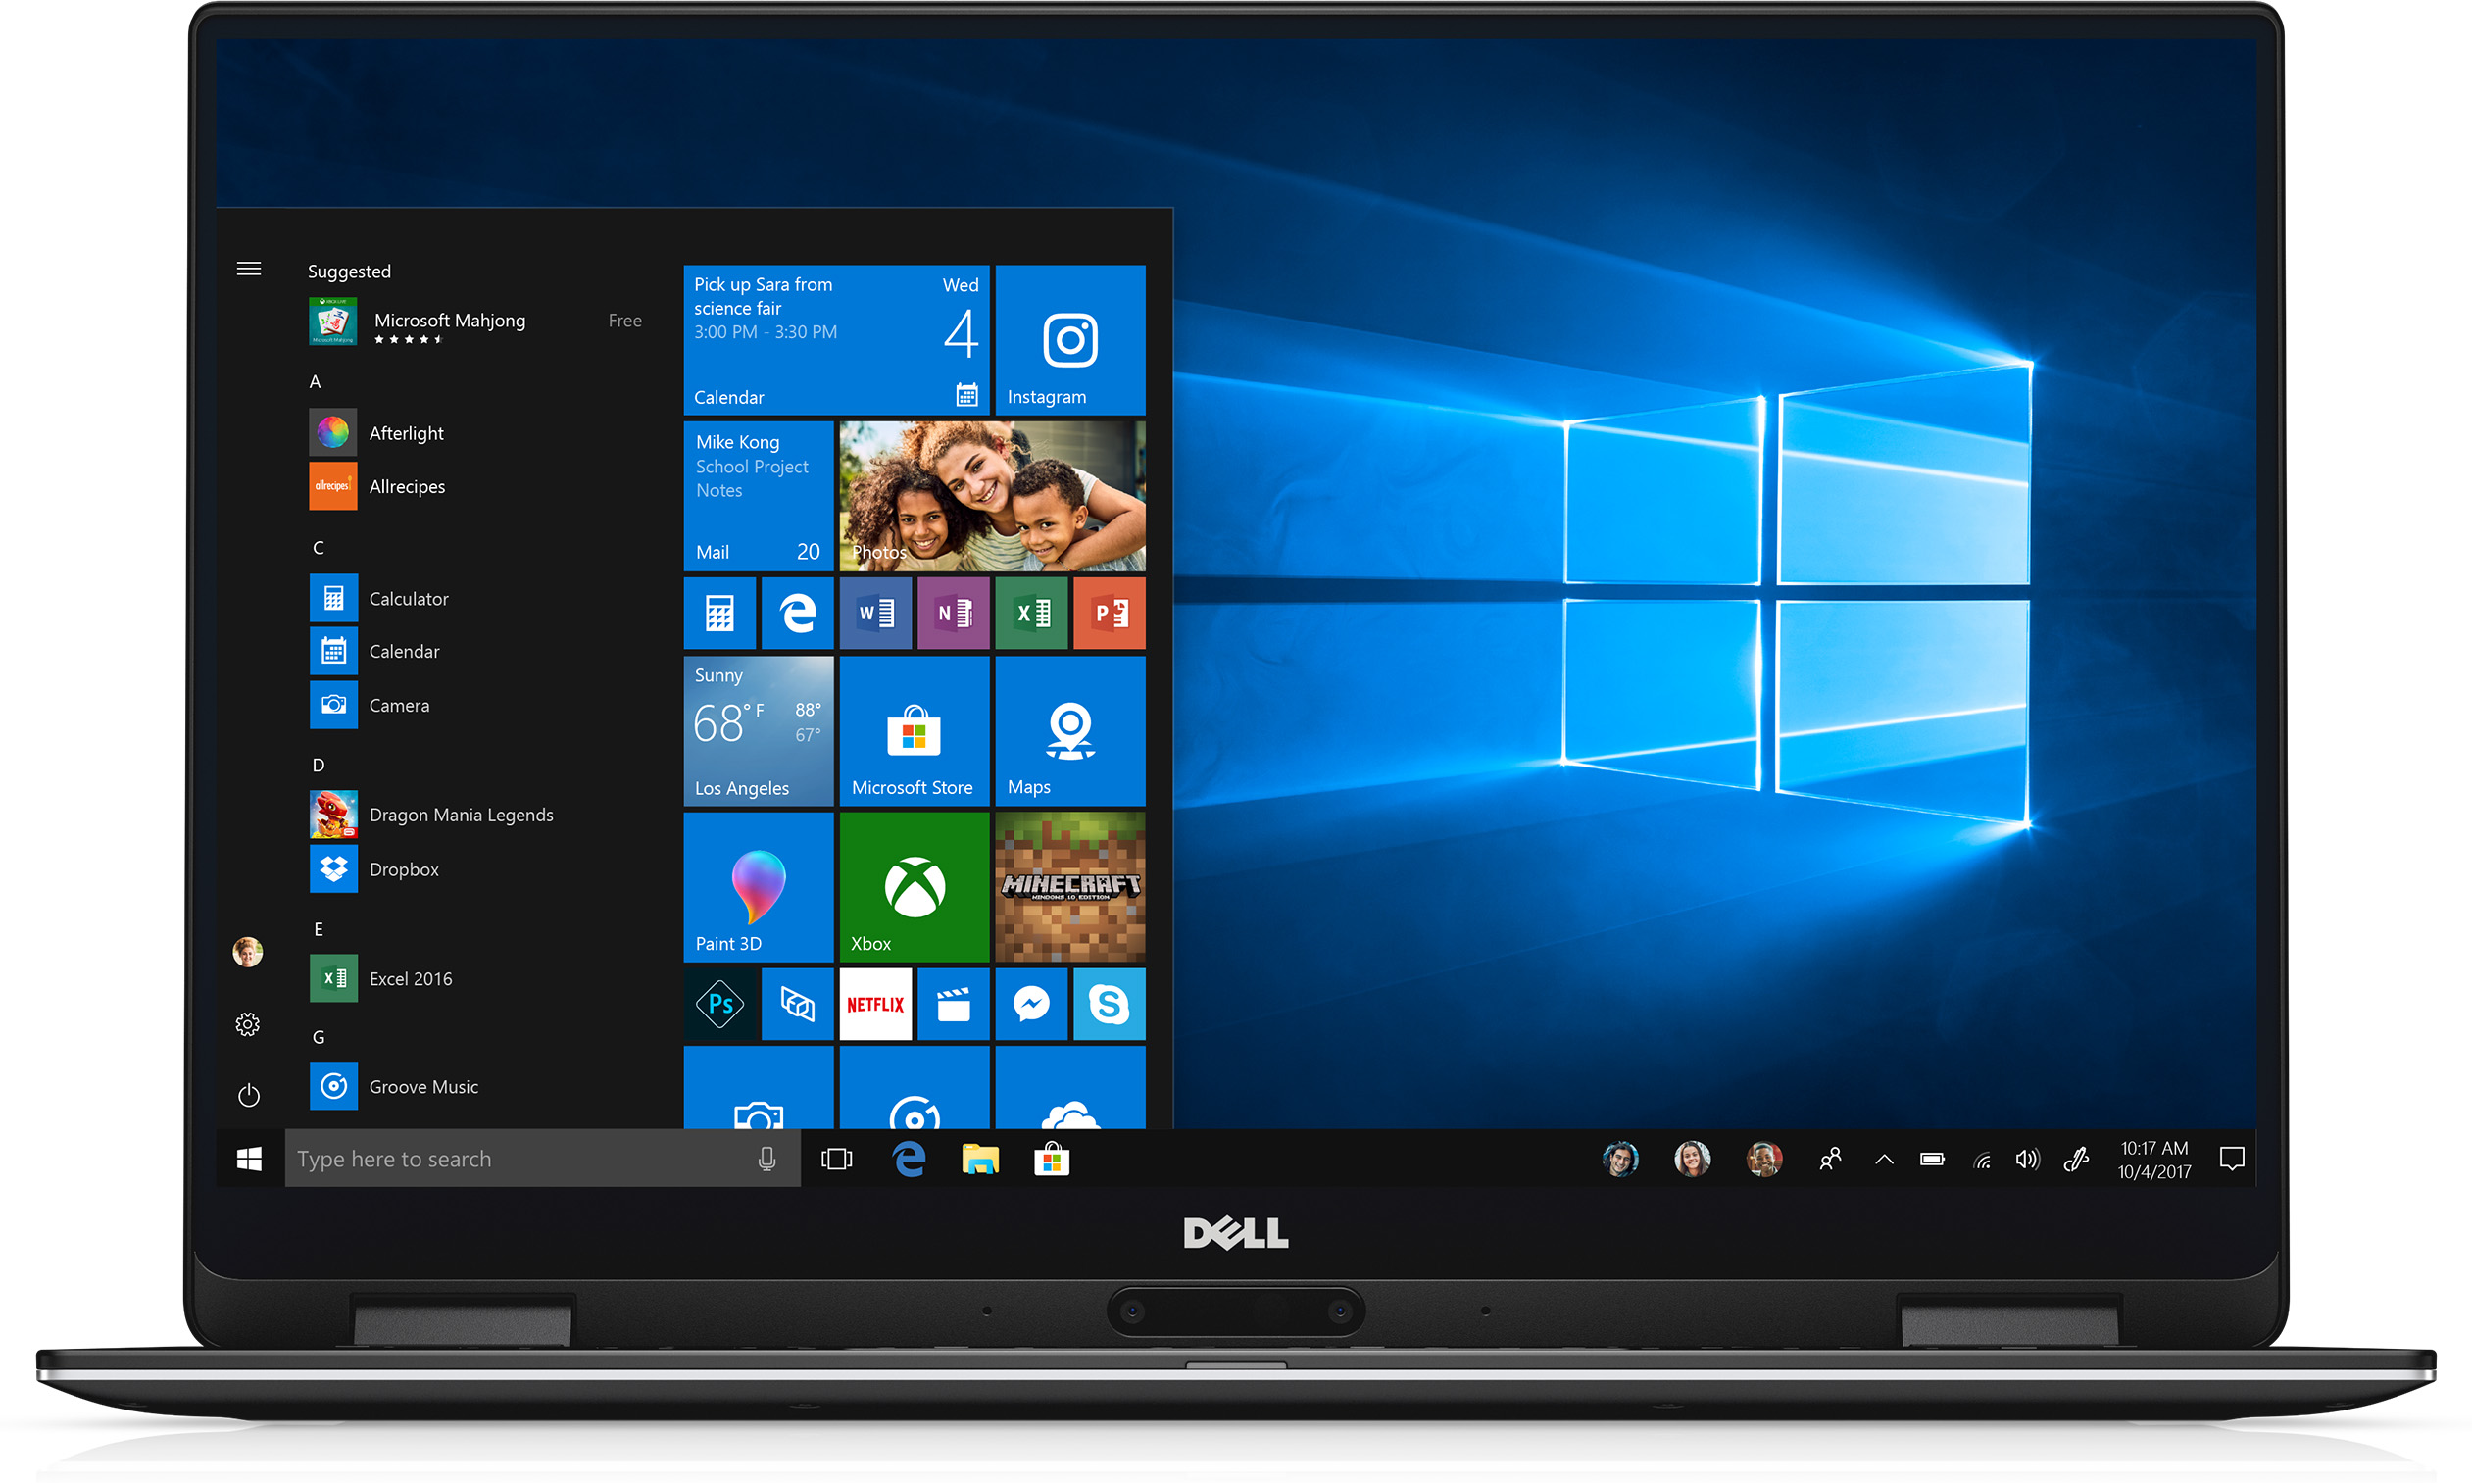 Dell XPS 13 9365 XPS9365-7494BLK-PUS 2 in 1 PC• 13.3-inch QHD+ touchscreen • Intel i7 7th Gen • 16GB memory/512GB SSD • Up to 15 hours battery life